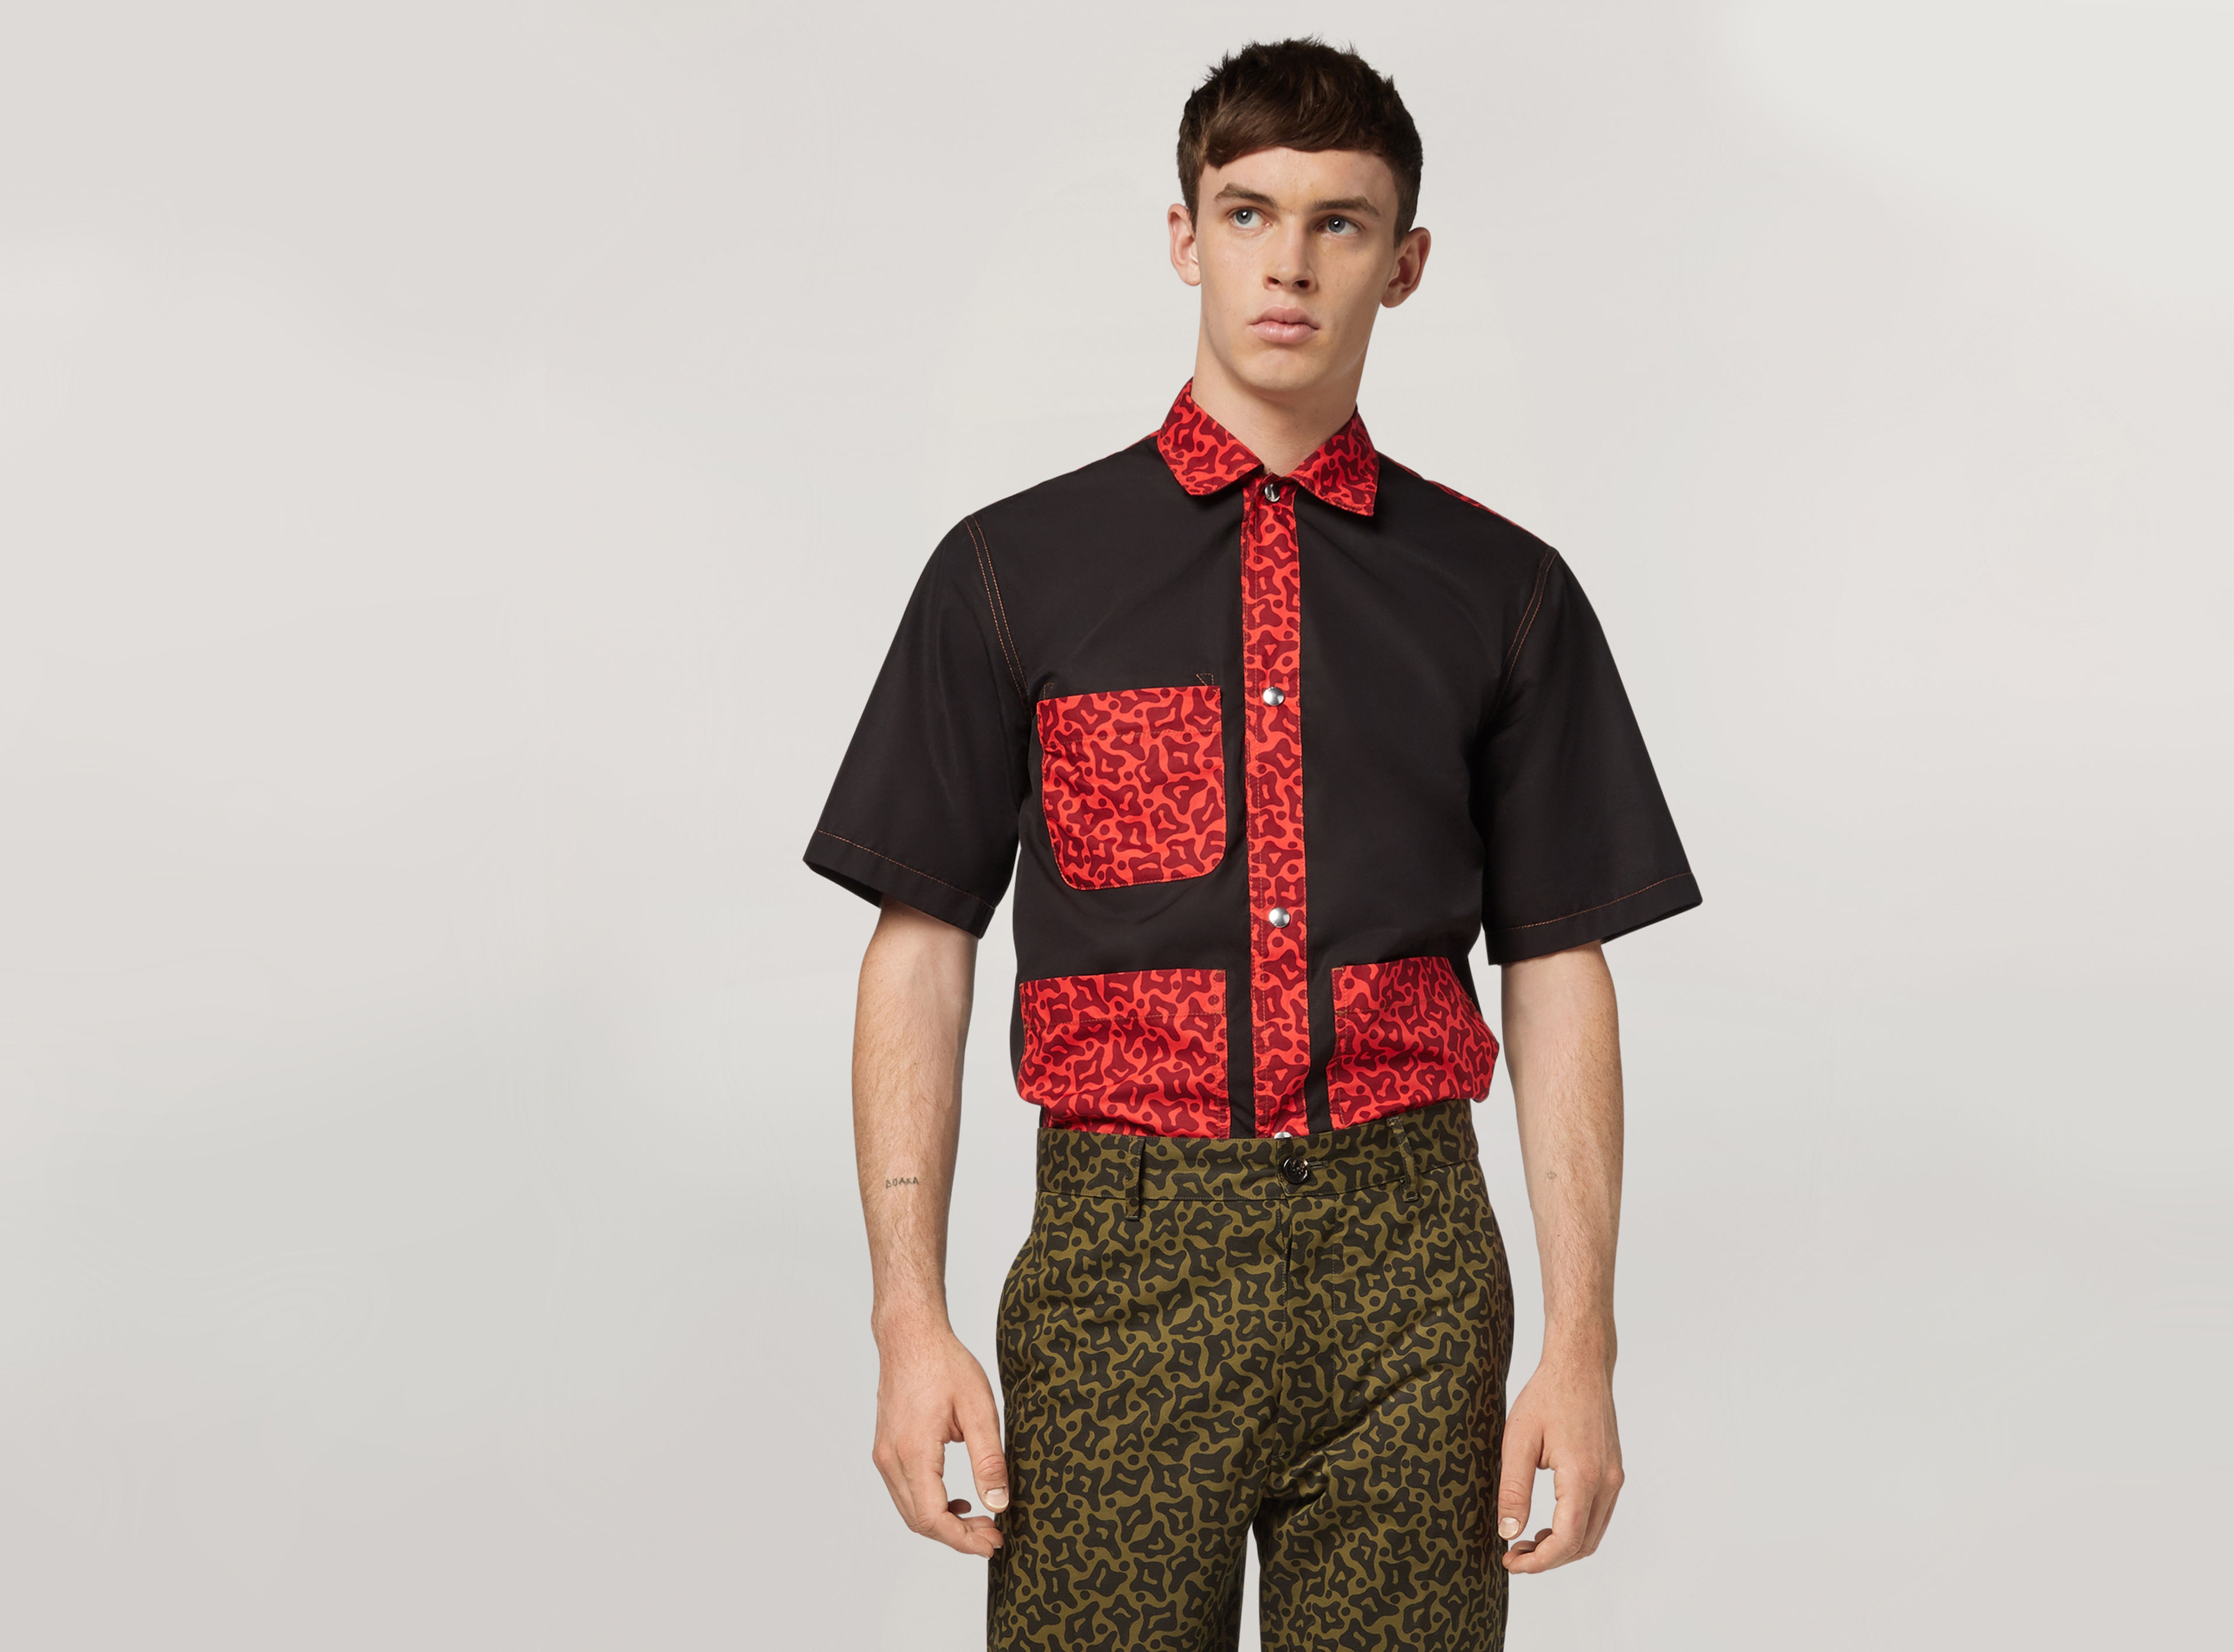 Model wear a shirt with a che guerrila print from the resort 2020 collection